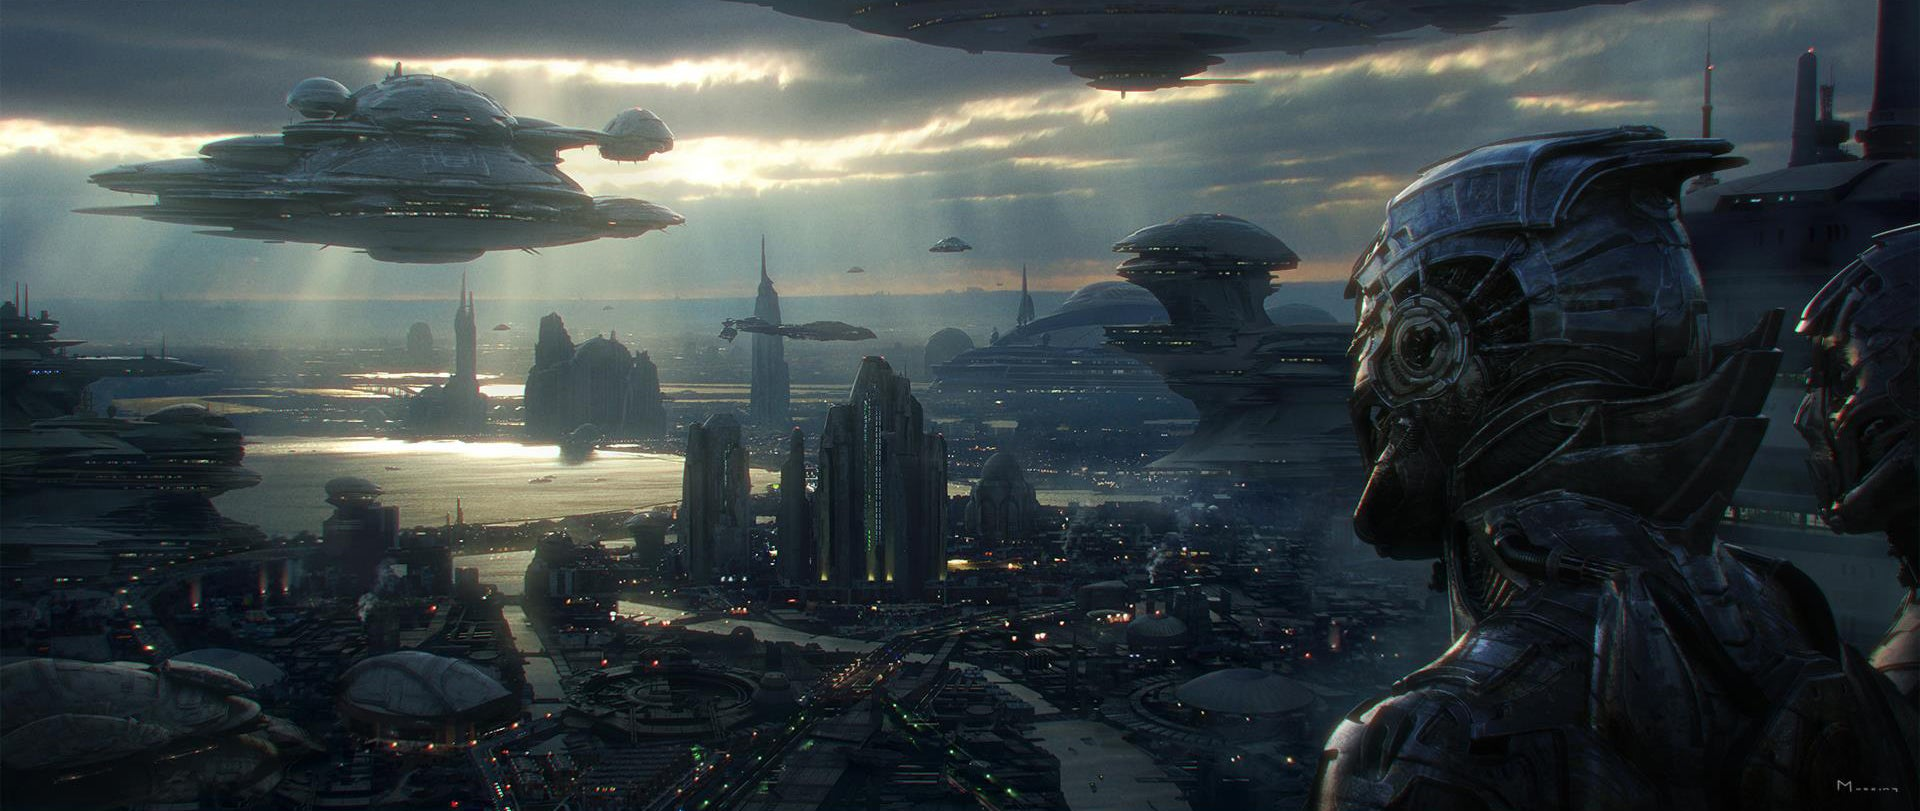 The magnificent science fiction art of steven messing for Architecture fantastique